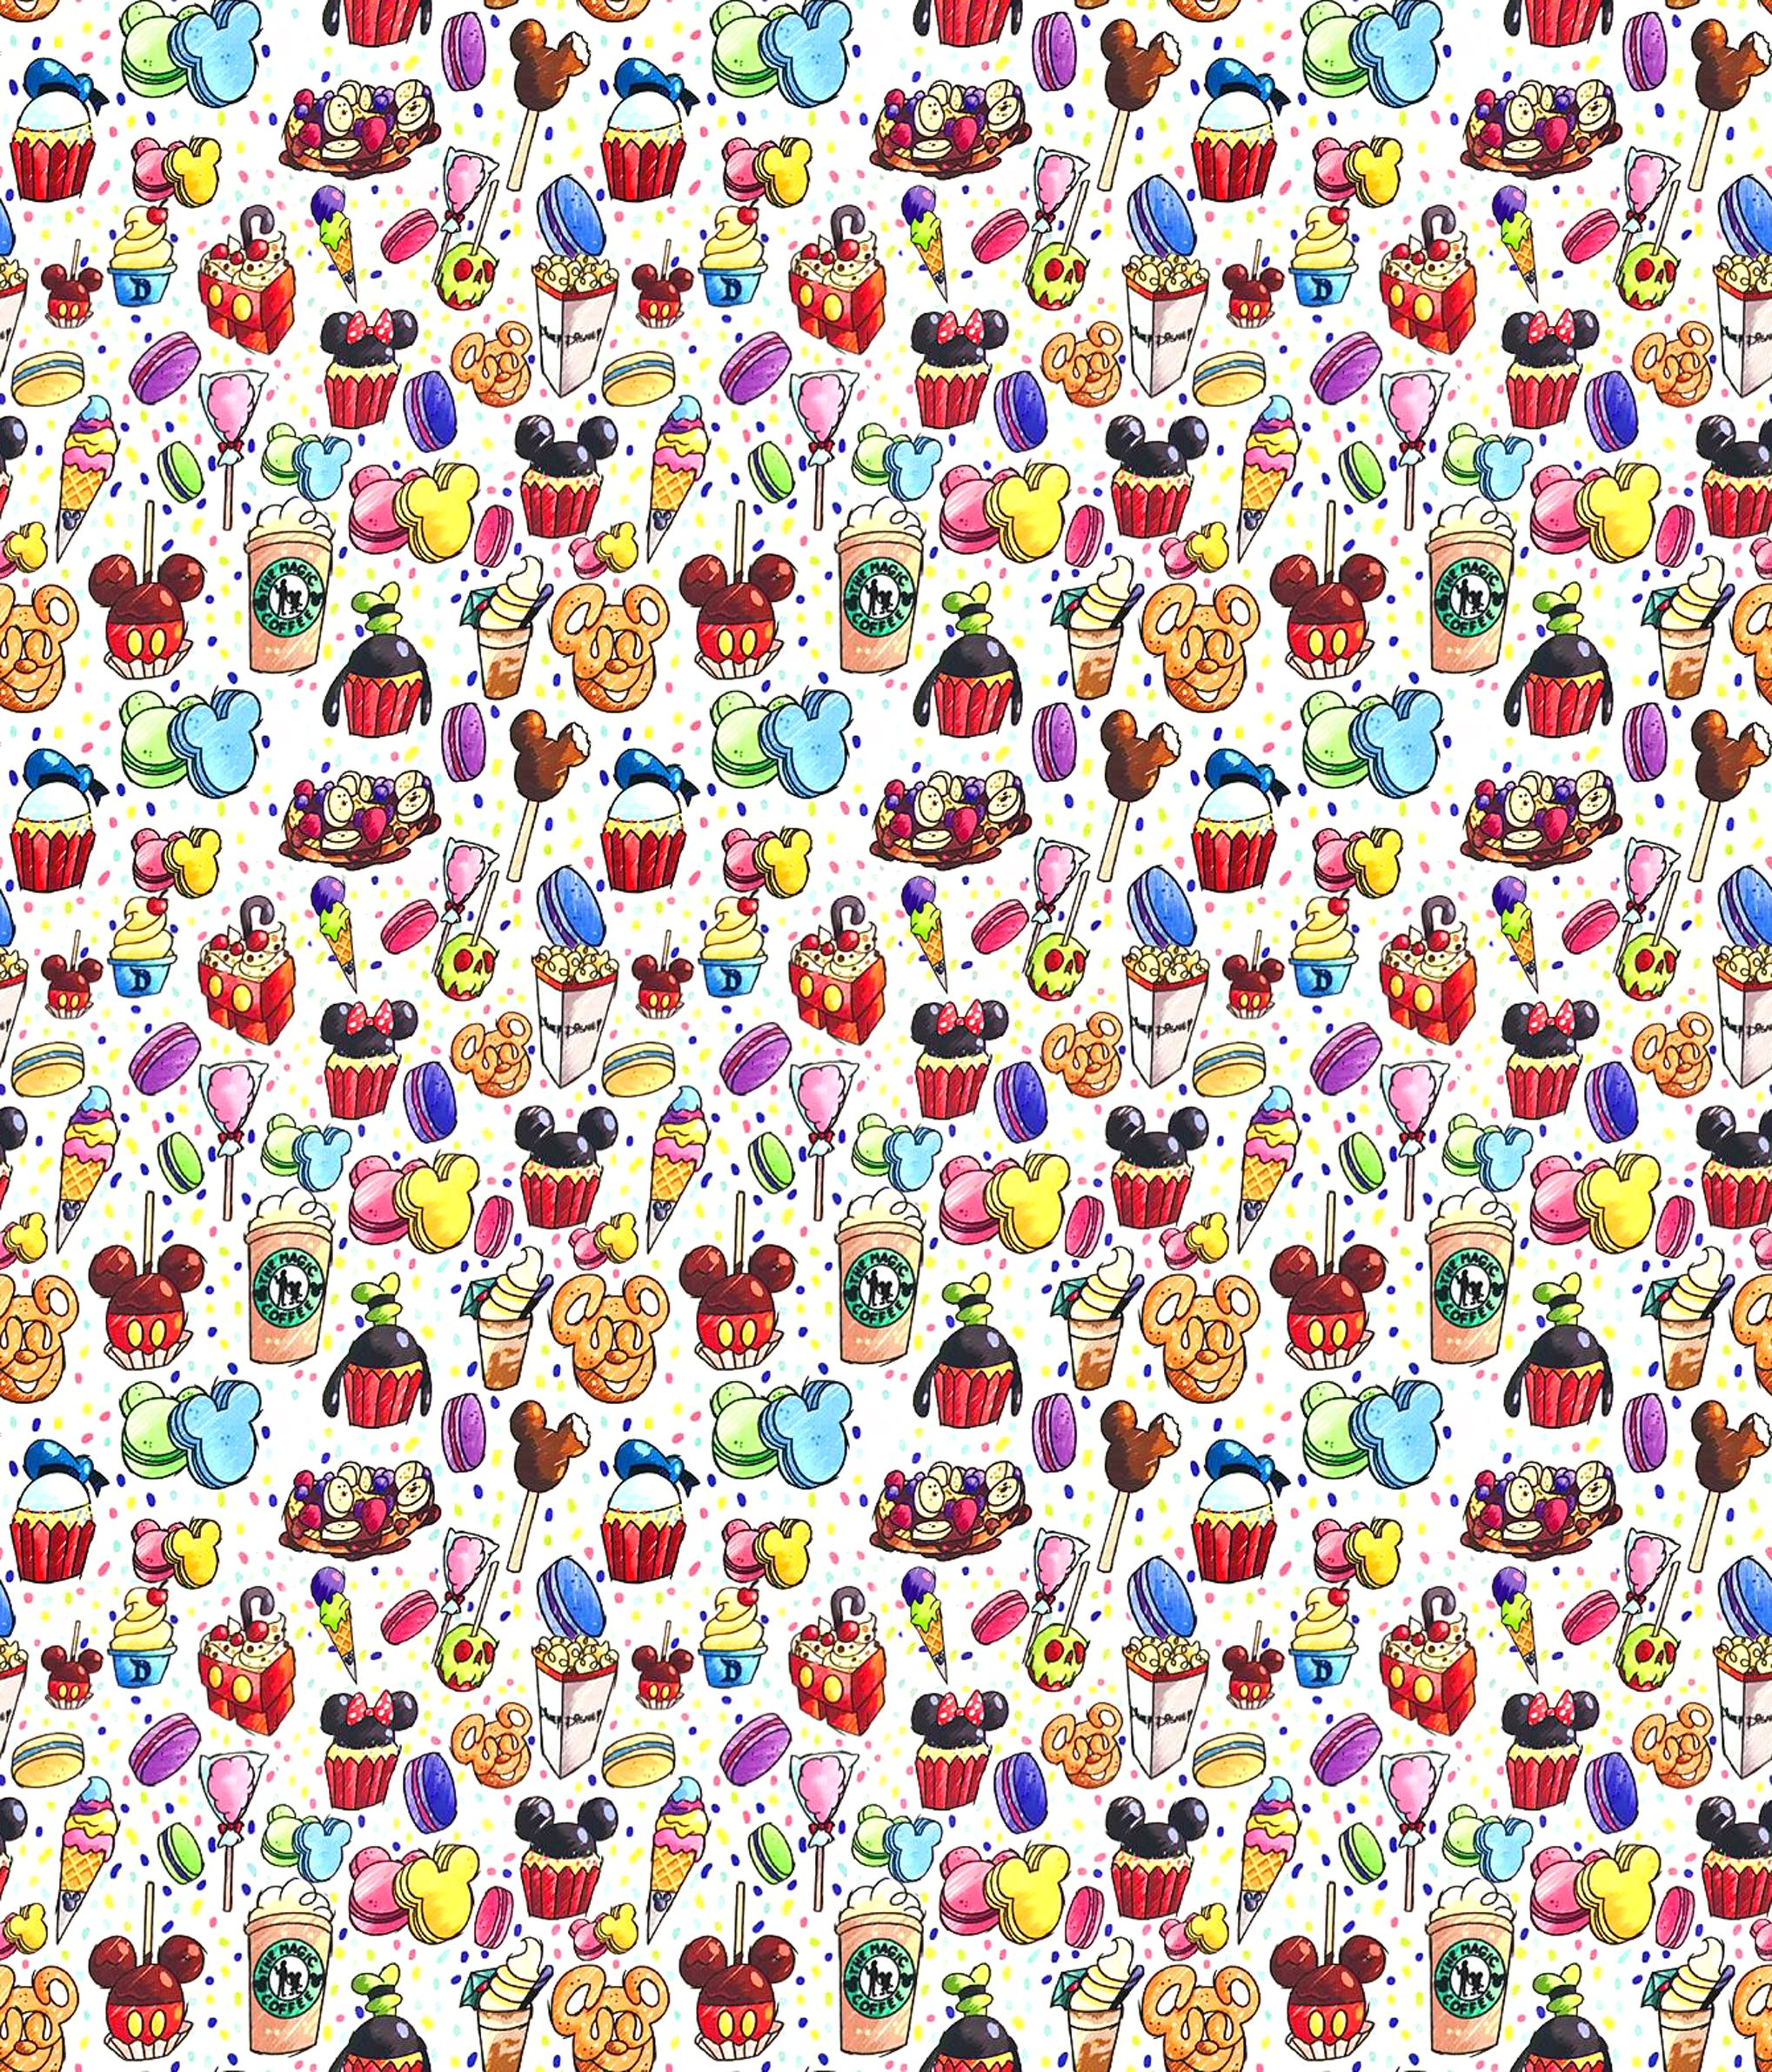 Disney Snack Wallpaper Disney Snacks Disney Wallpaper Disneyland